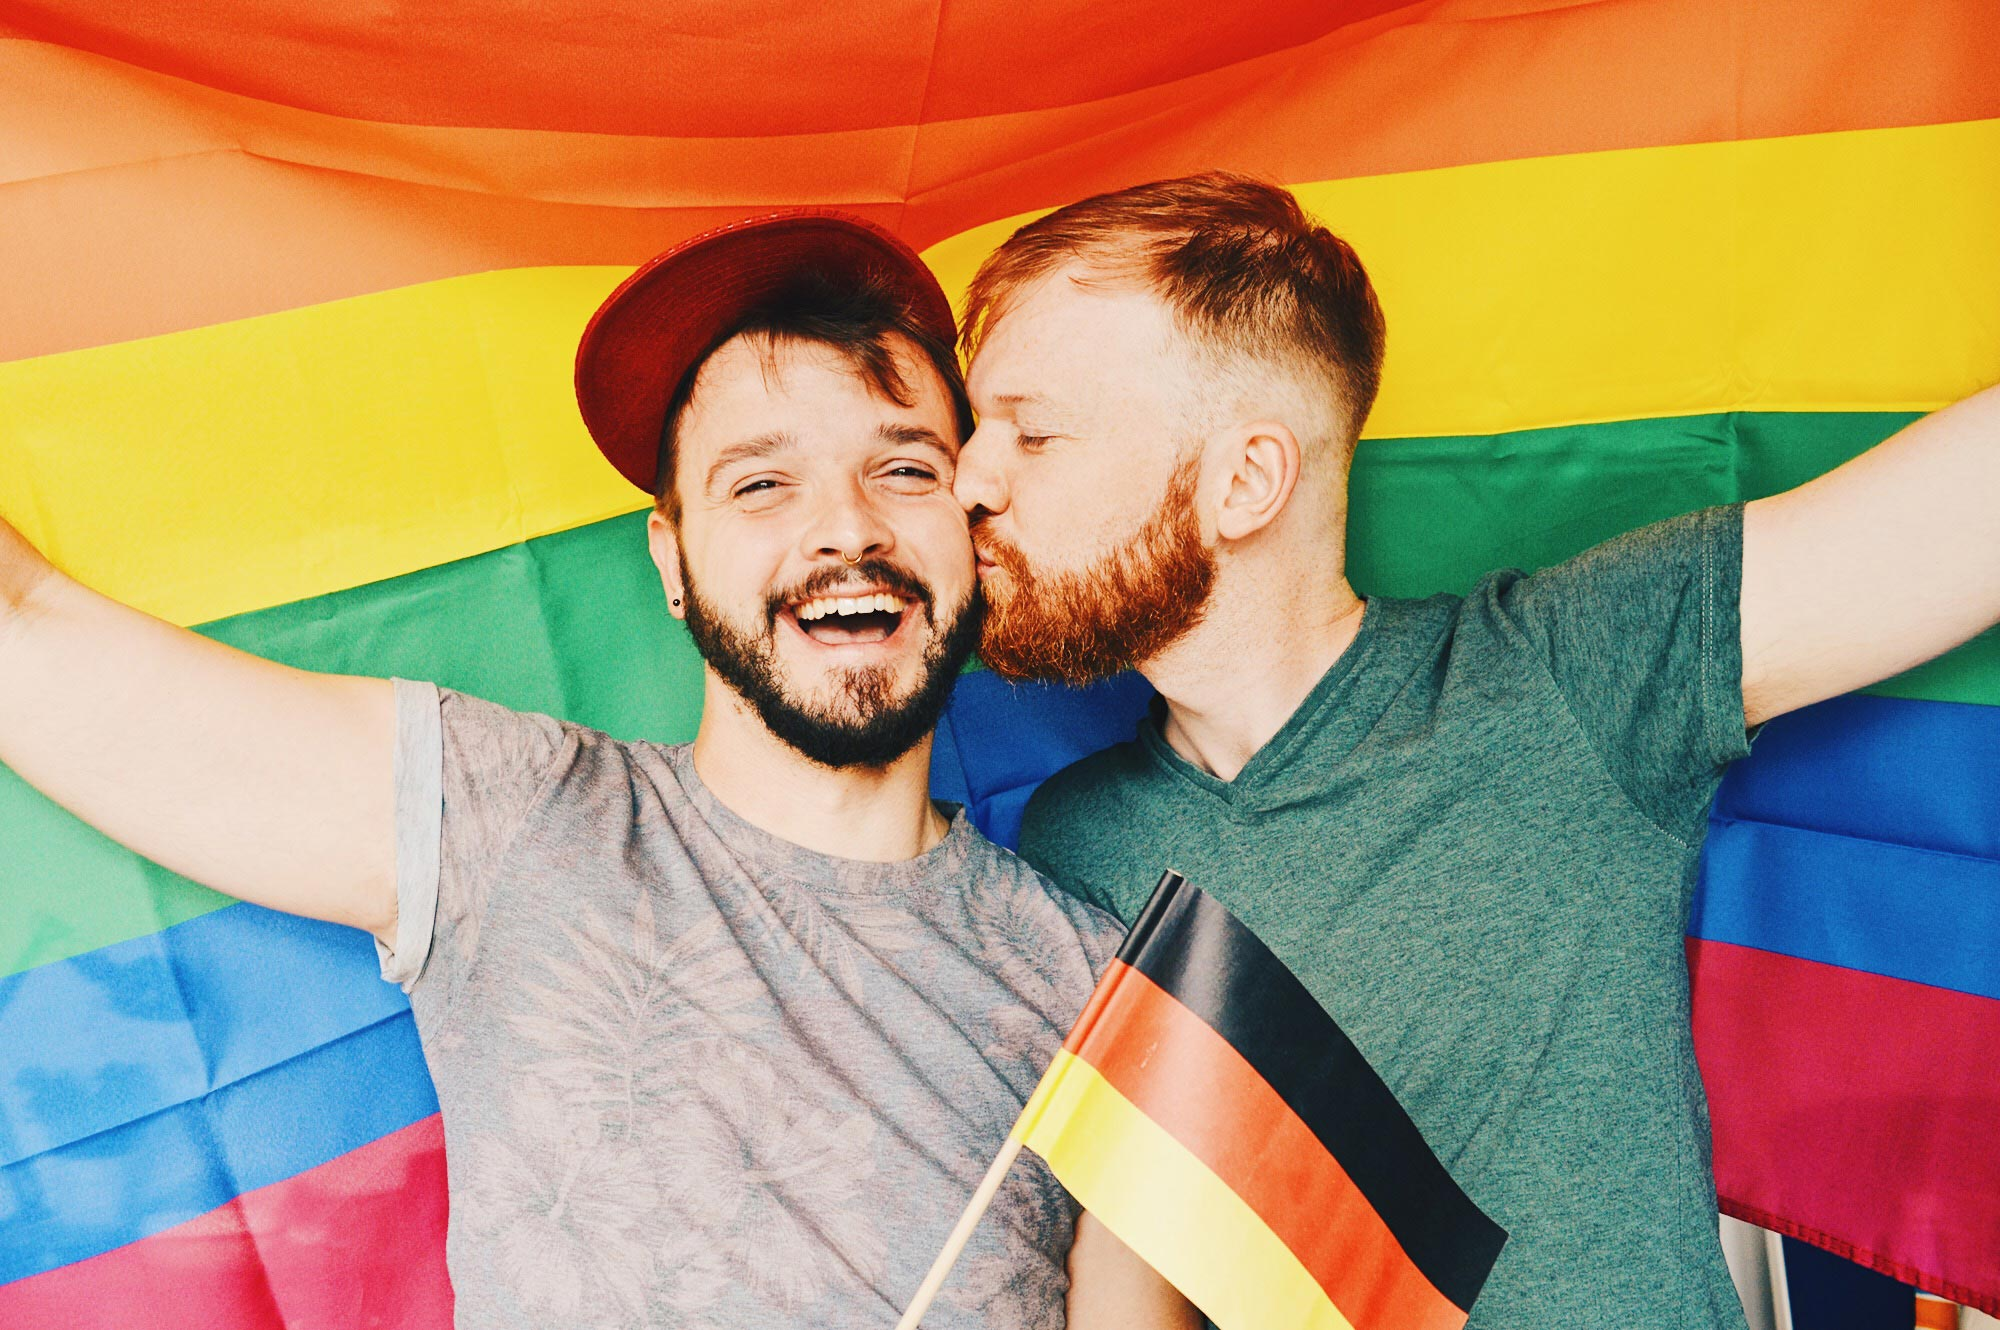 How Our Photo Got Stolen by Trolls to tie LGBTQ+ to Pedophilia © Coupleofmen.com CSD Kalender Deutschland 2018 Gay Pride Calendar Germany 2018 Gay Couple celebrates equality for Germany Same-Sex Marriage © CoupleofMen.com